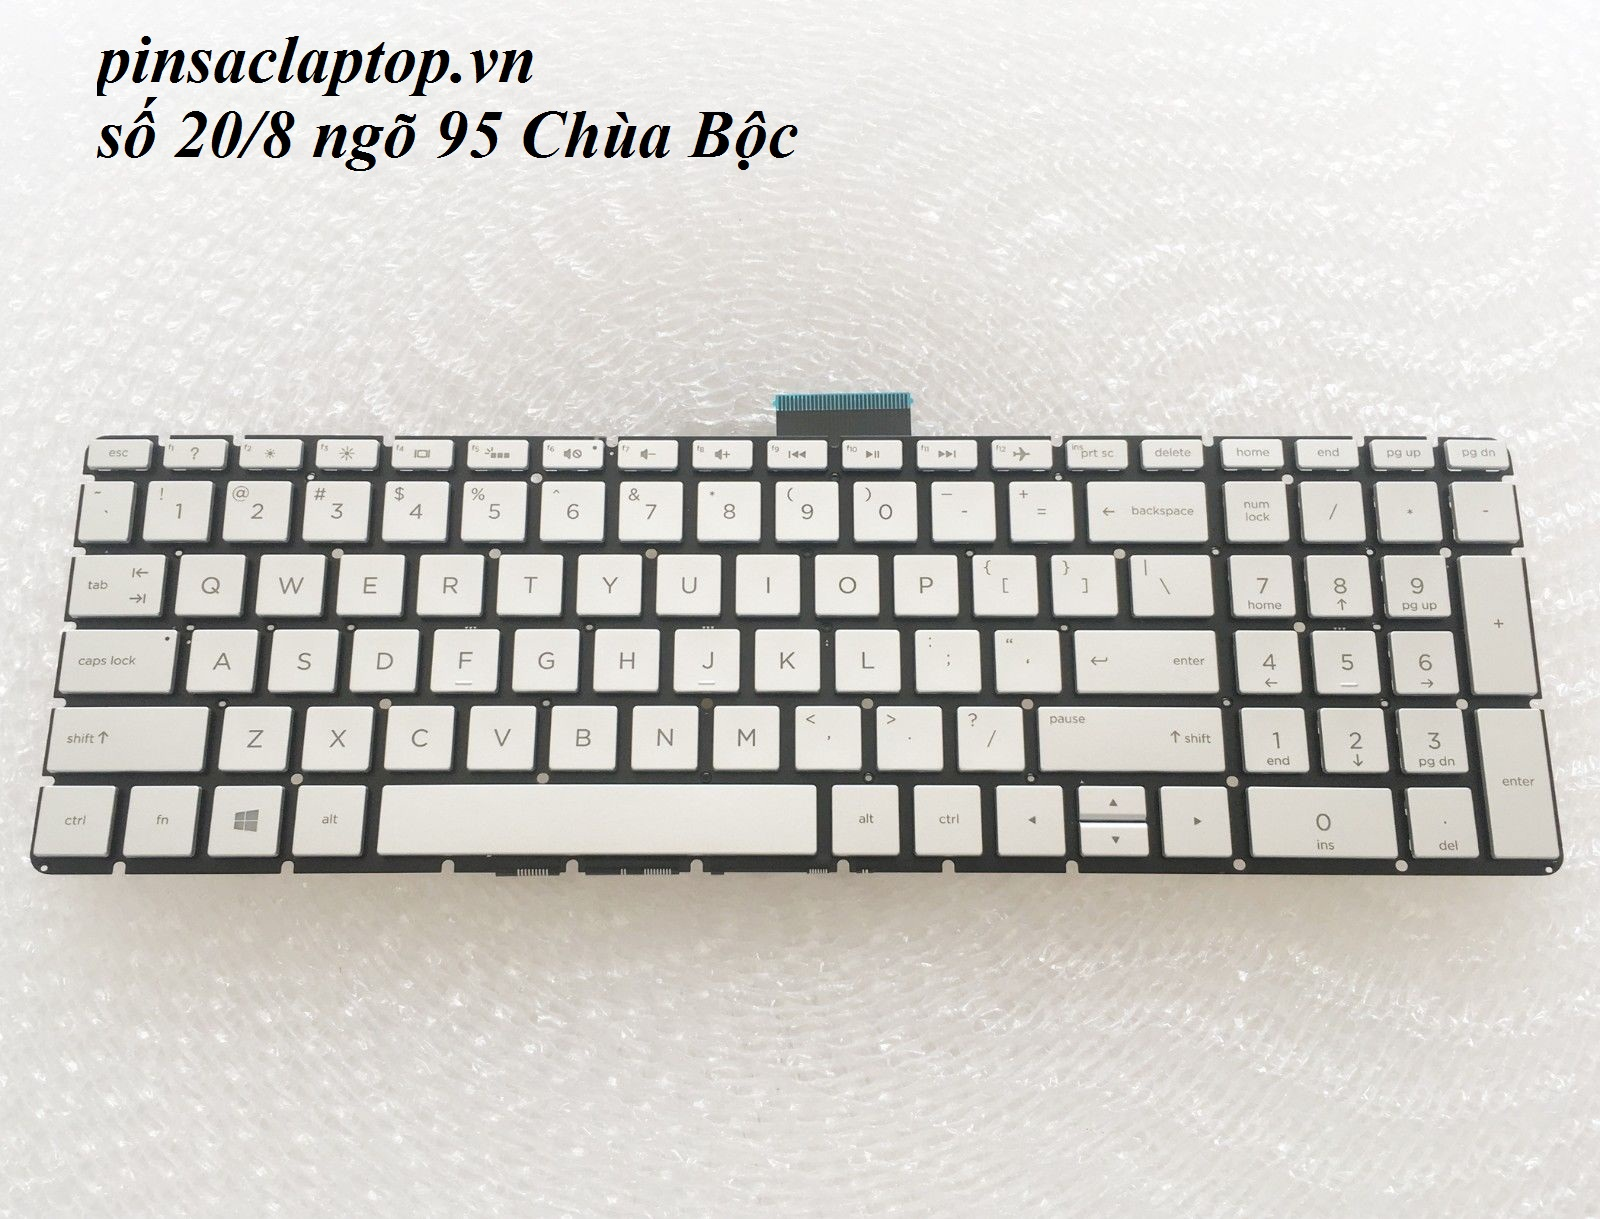 Bàn Phím - Keyboard HP 15-cs series 15-cs0059nr 15-cs0061st cs0061cl 15-cs0064st 15-cs0069nr